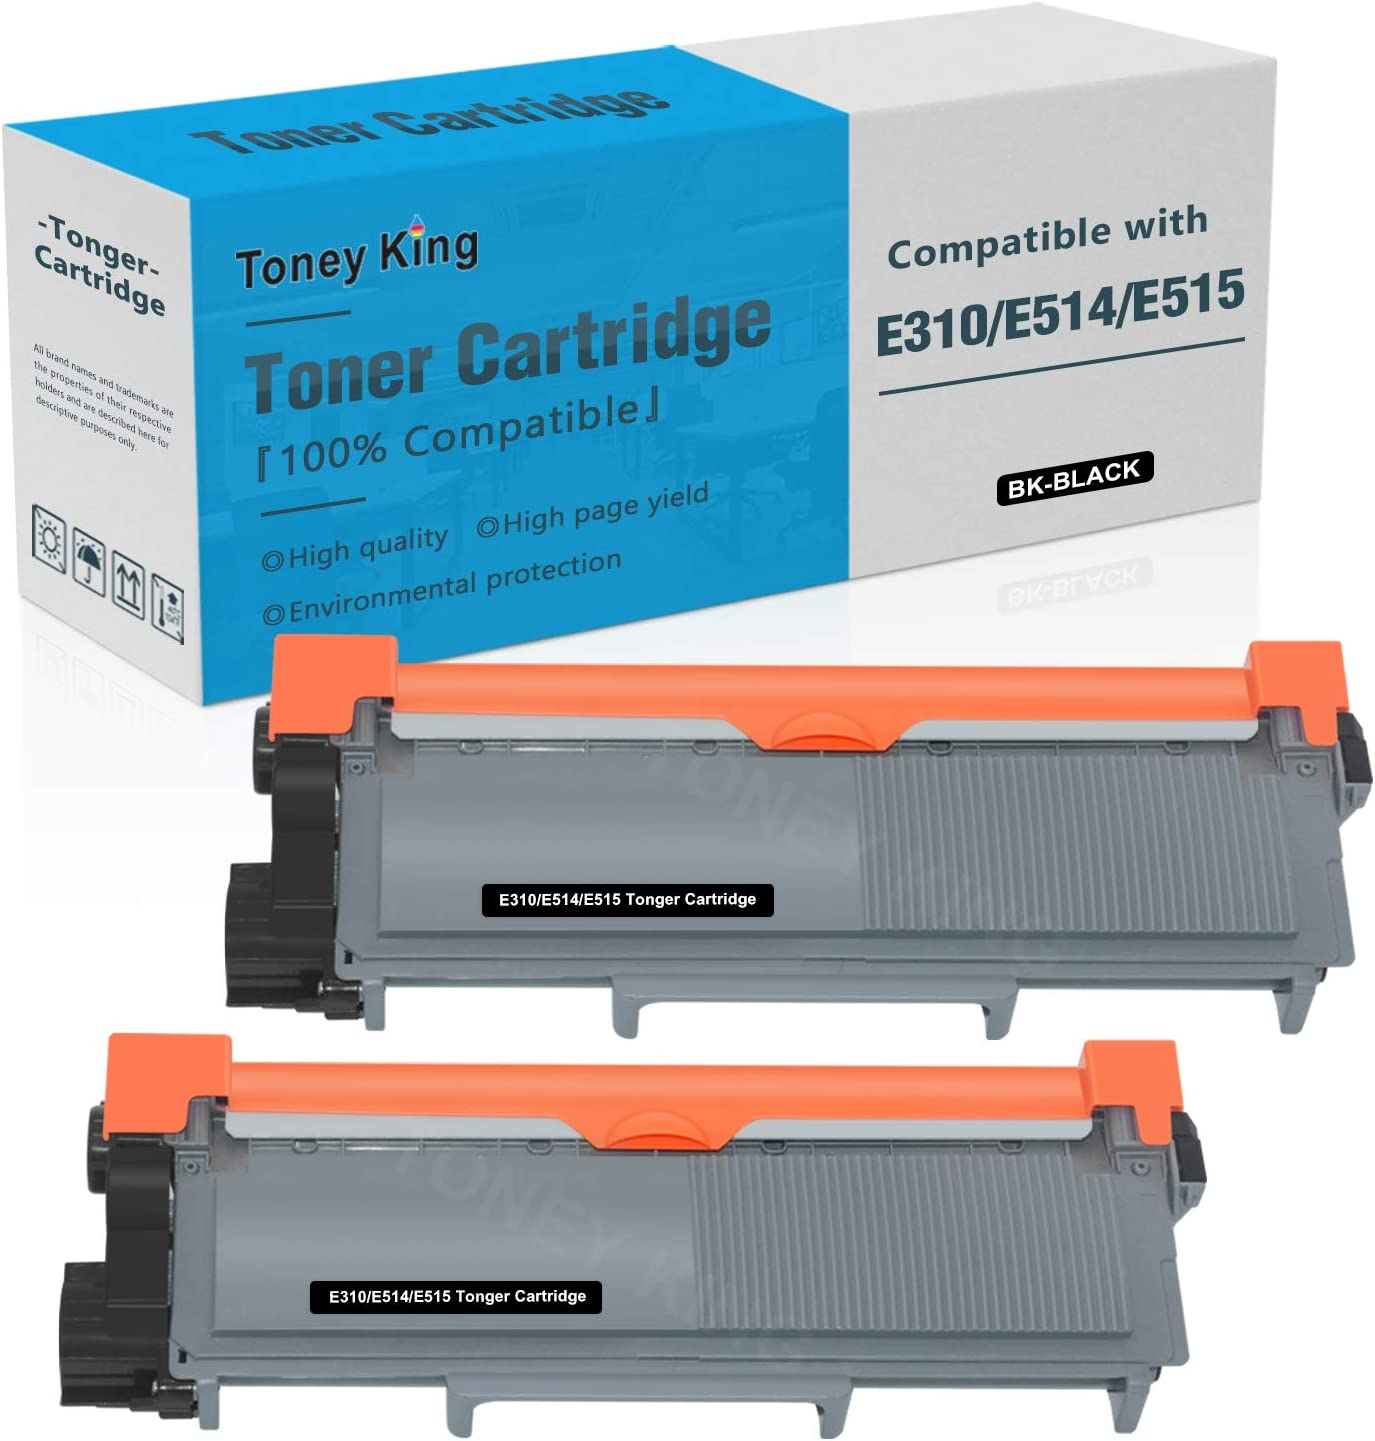 Compatible E310 E514 E515 Toner Cartridge Replacement for Dell E514dw E310dw E515dw E515dn Printer Toner Cartridges ( Dell PVTHG, 593-BBKD, P7RMX, 2,600 Page High Yield, 2PK x Black ) by Toney King